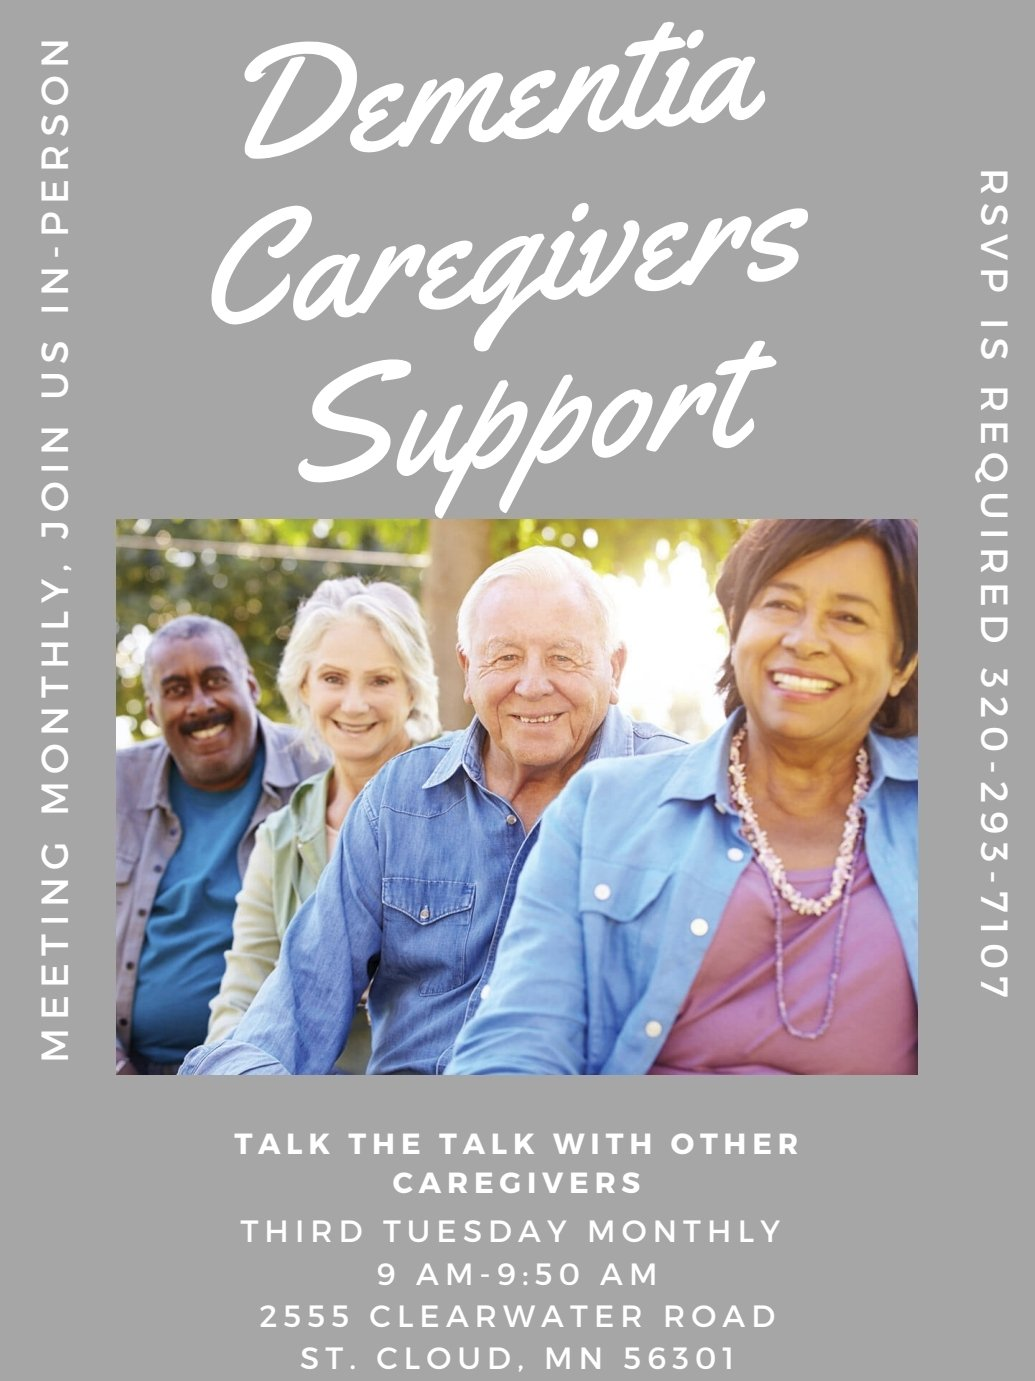 Caregiver Support Group by Silver Lining Dementia